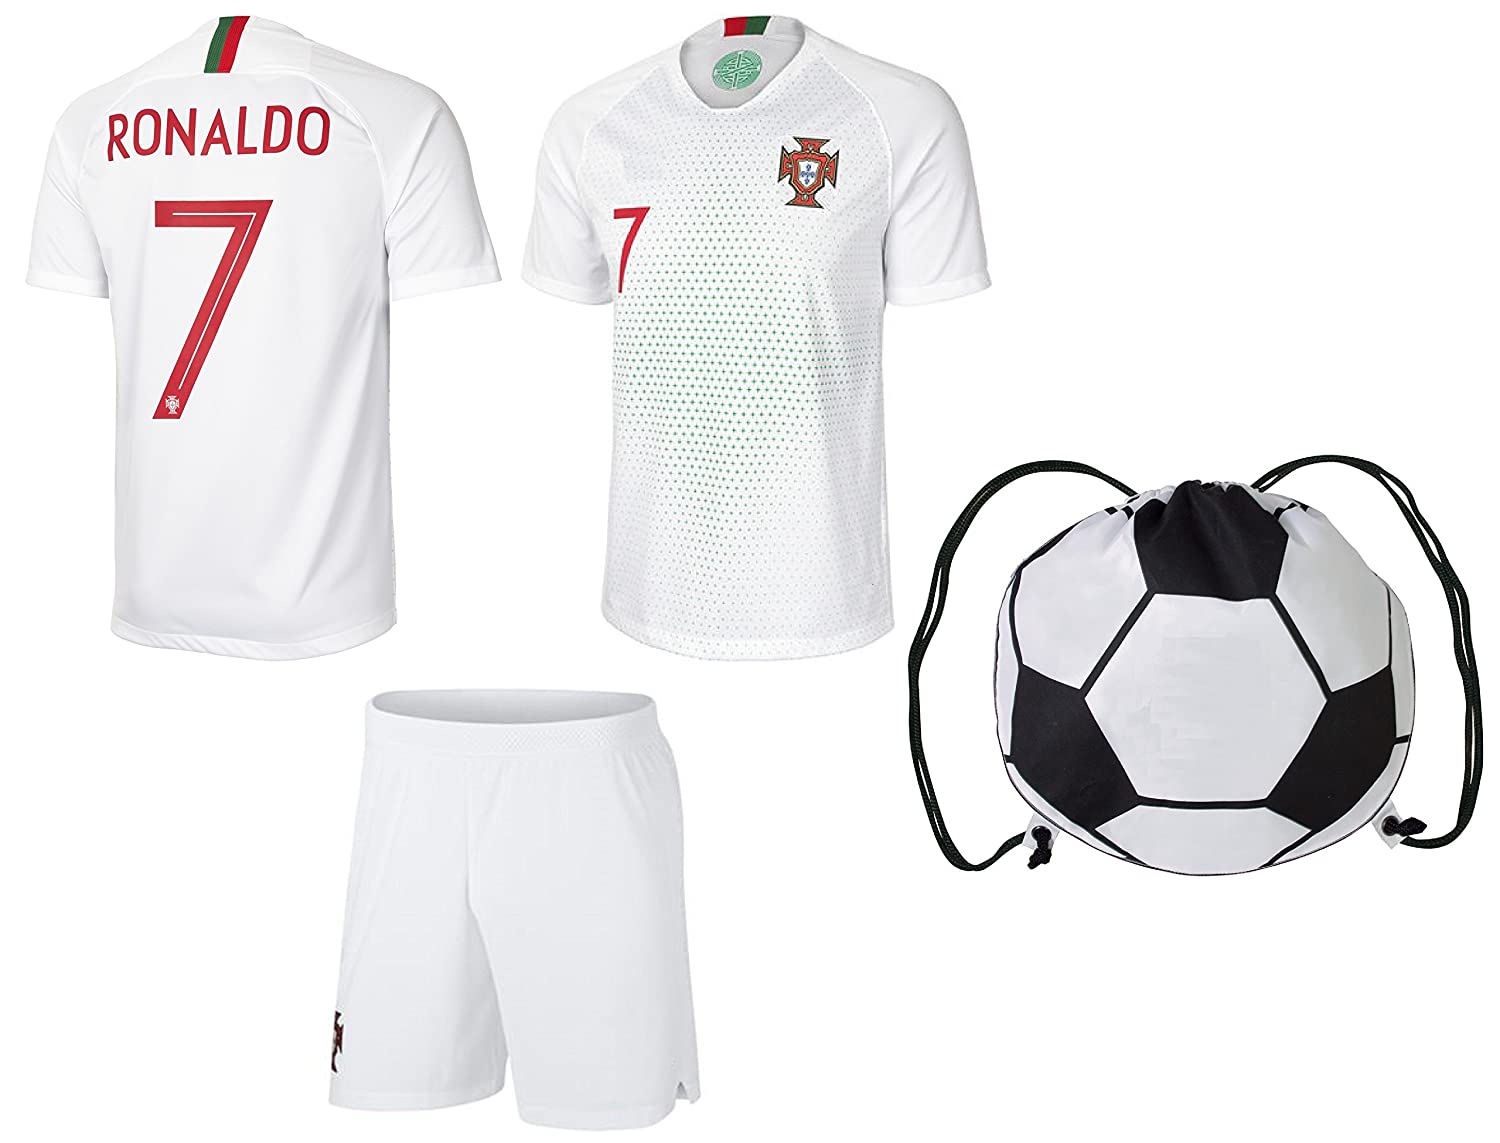 Portugal AwayブラックRonaldo Kids # 7サッカーキットJersey and Free Shortsすべてユースサイズ B018GMLBZ6 Kids Small 5-8 years of age